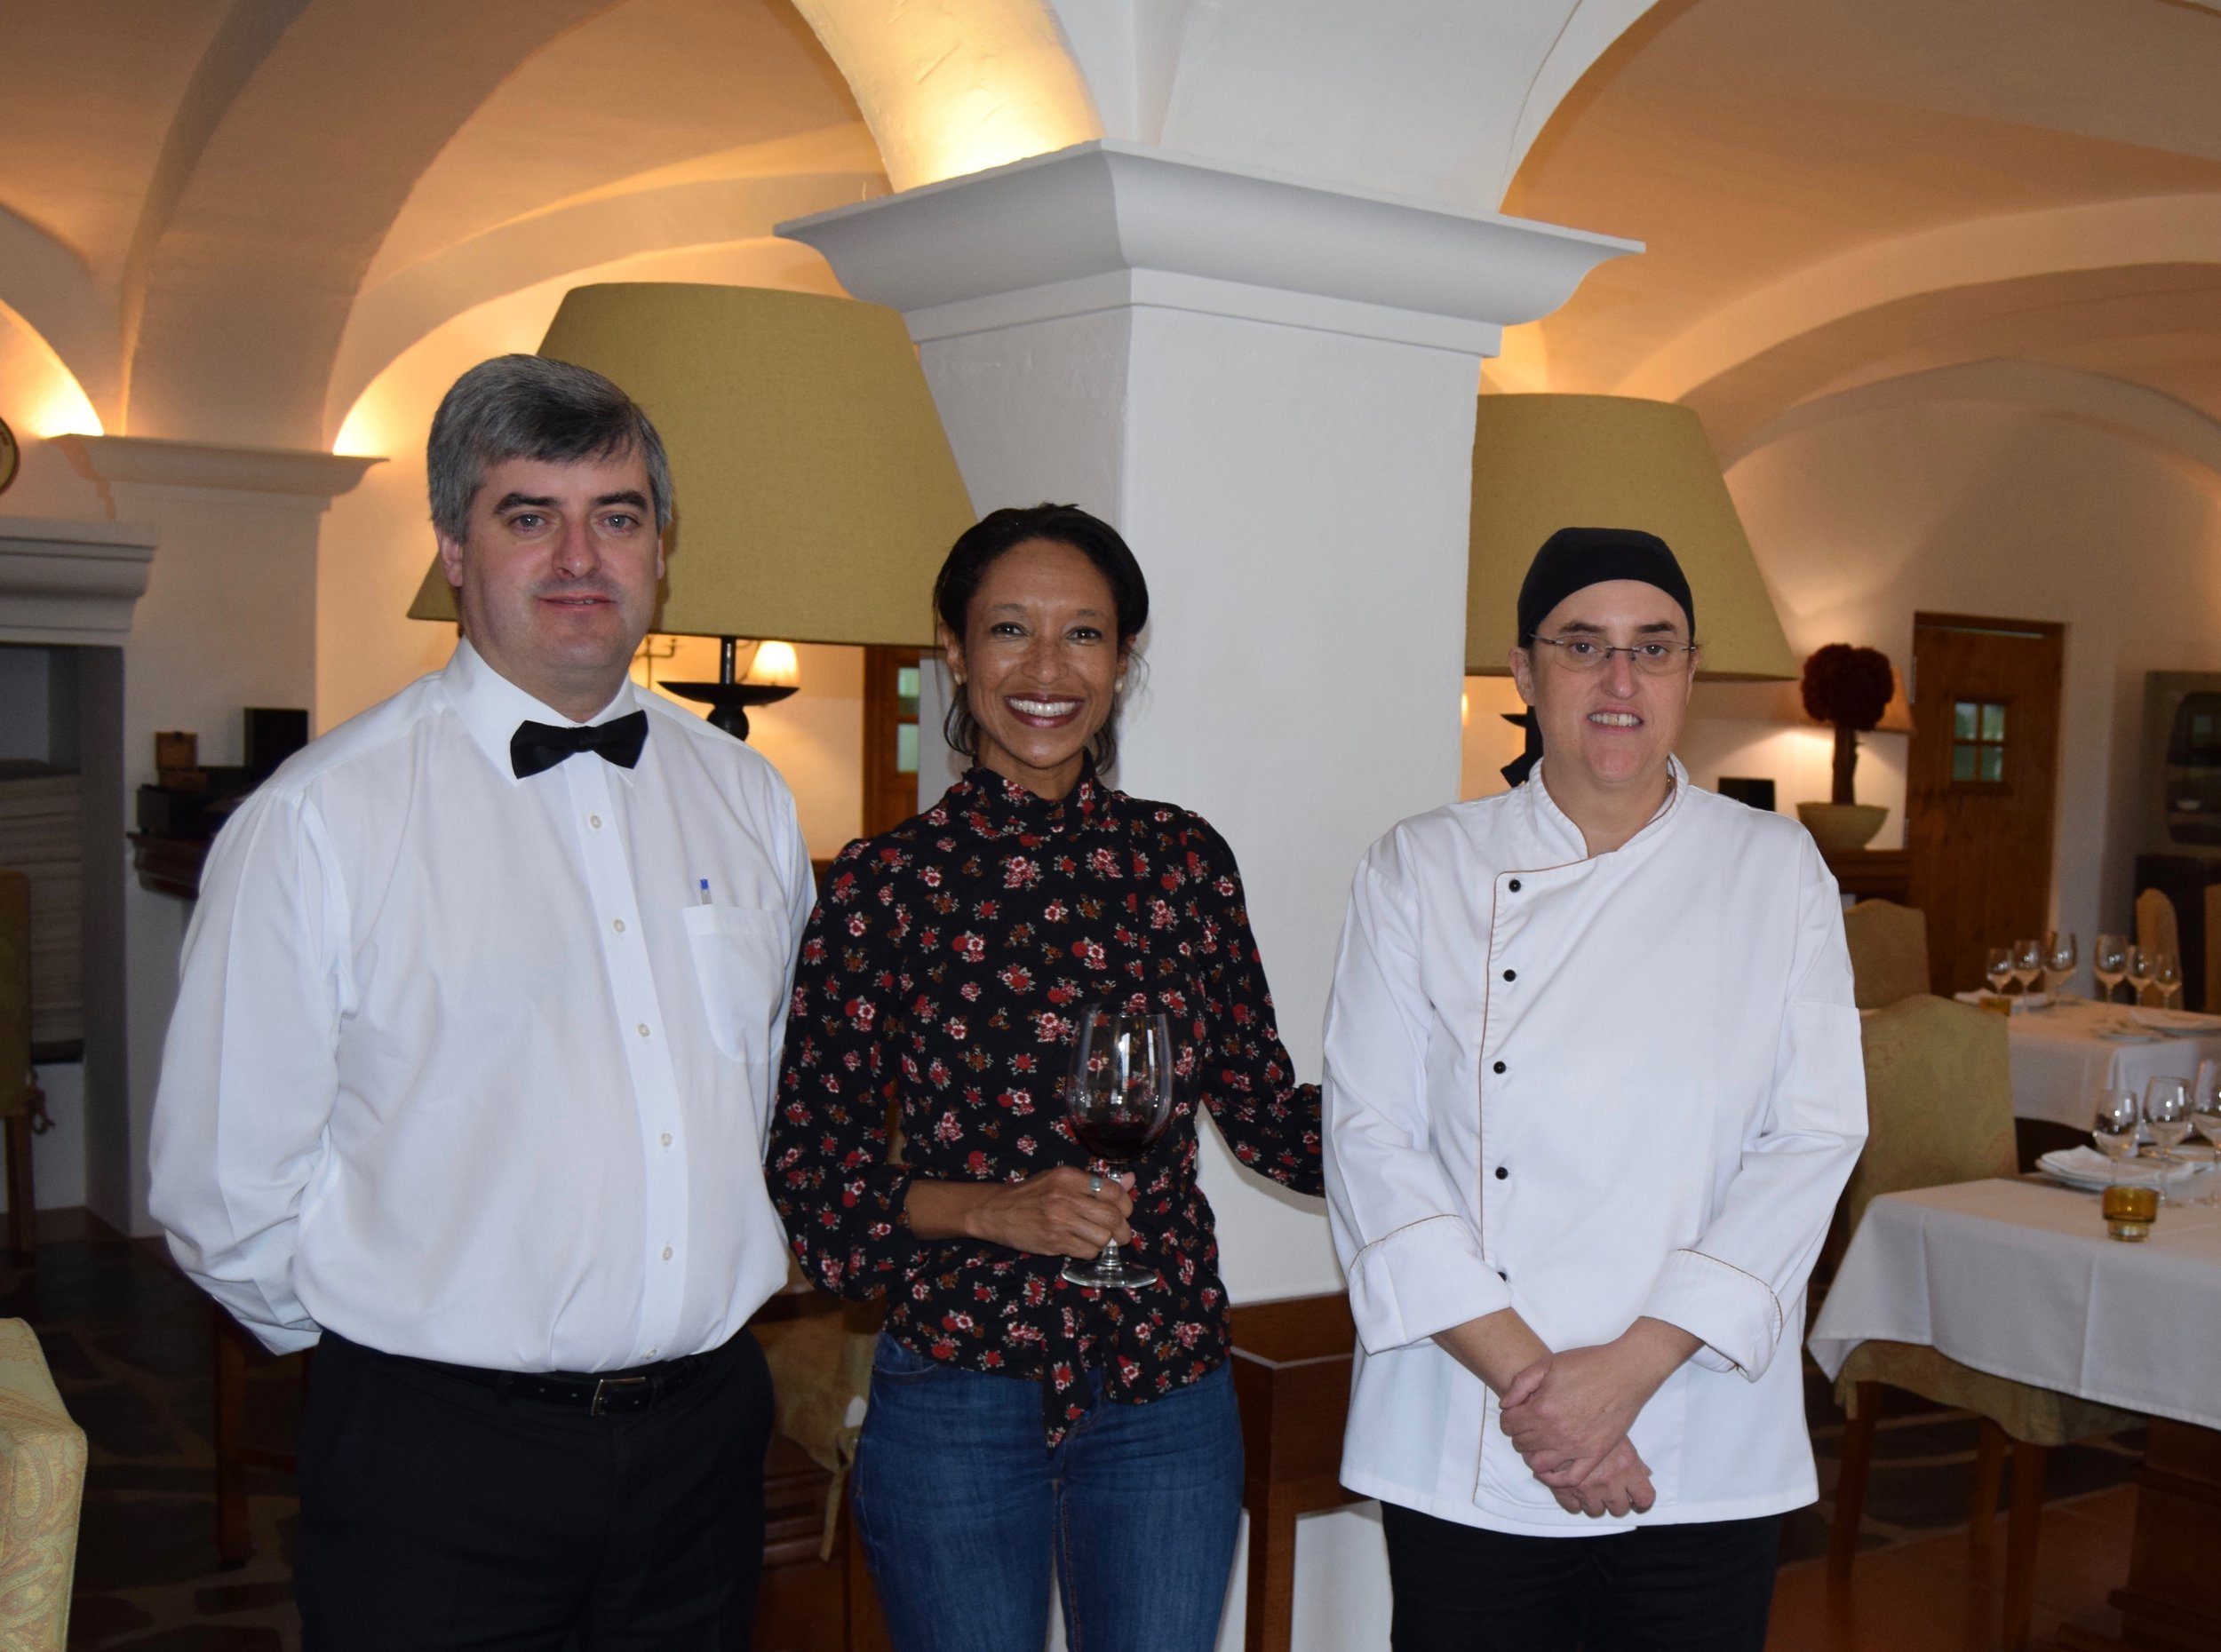 owners and master chef at herdade das servas restaurant